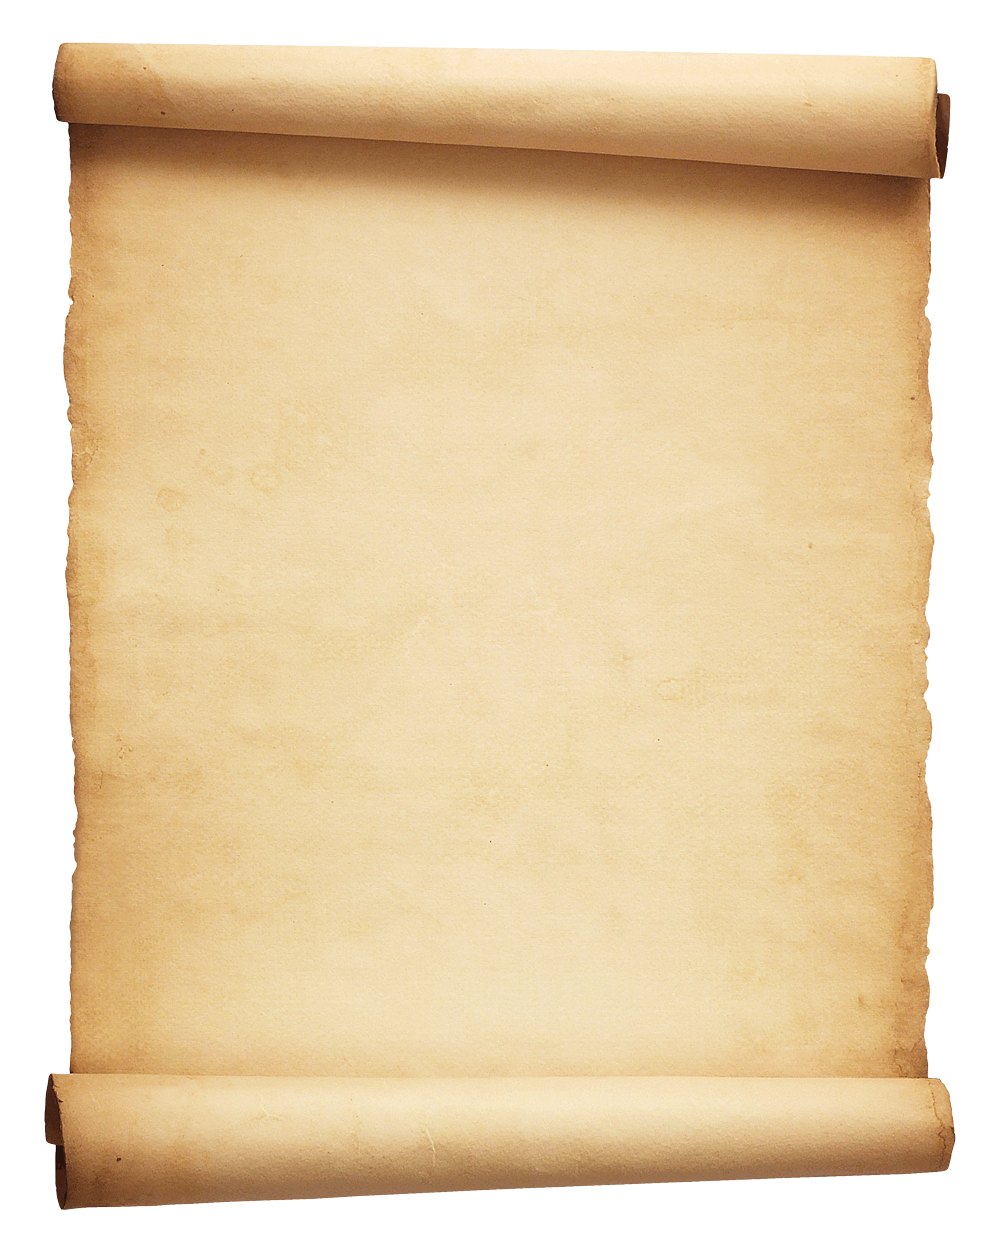 Paper Png Transparent